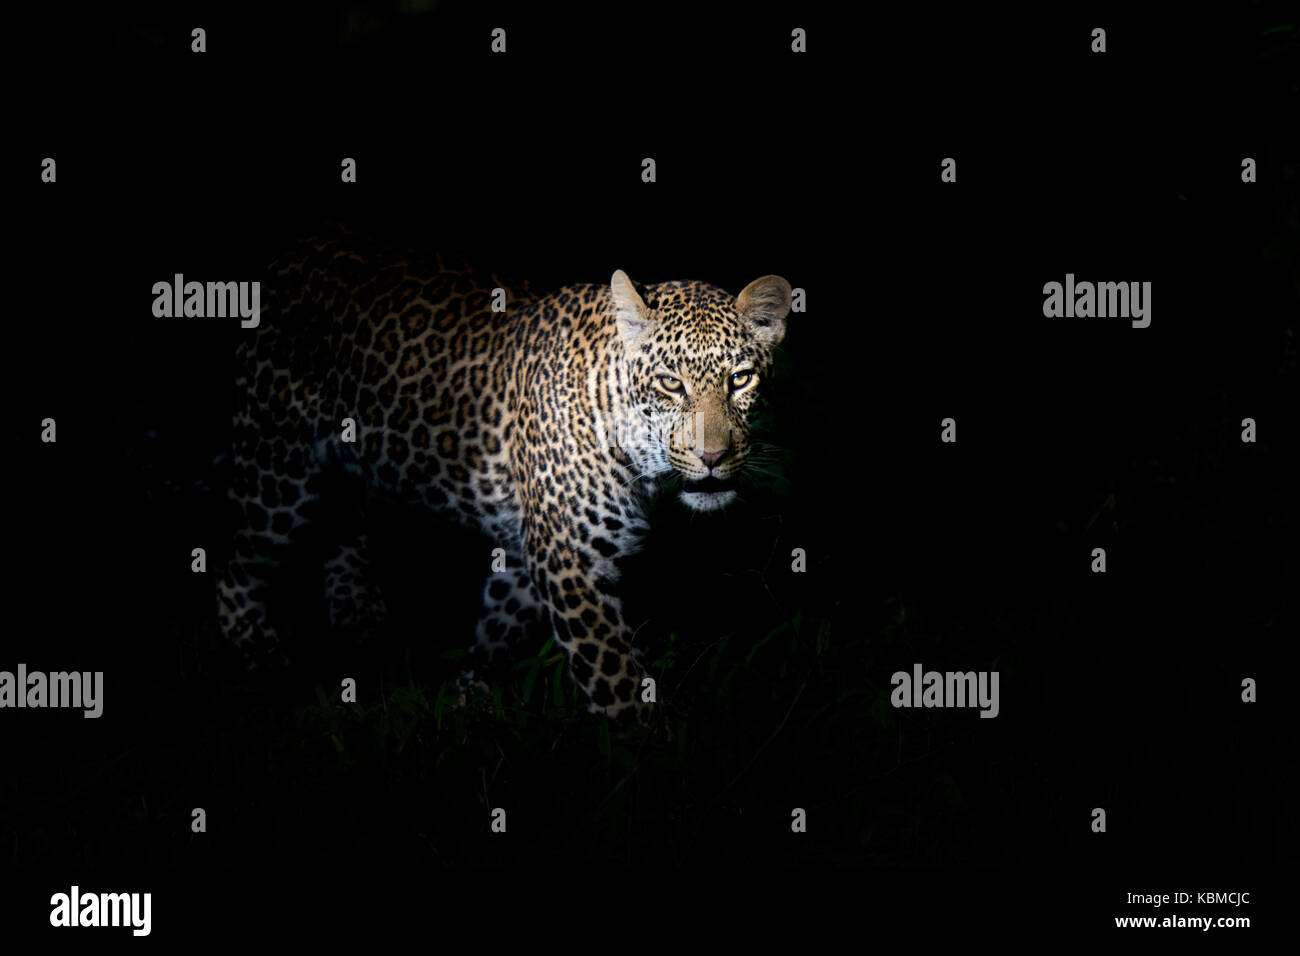 African Leopard (Panthera pardus) standing in the dark, illuminated on the head, looking at camera, Masai Mara national - Stock Image